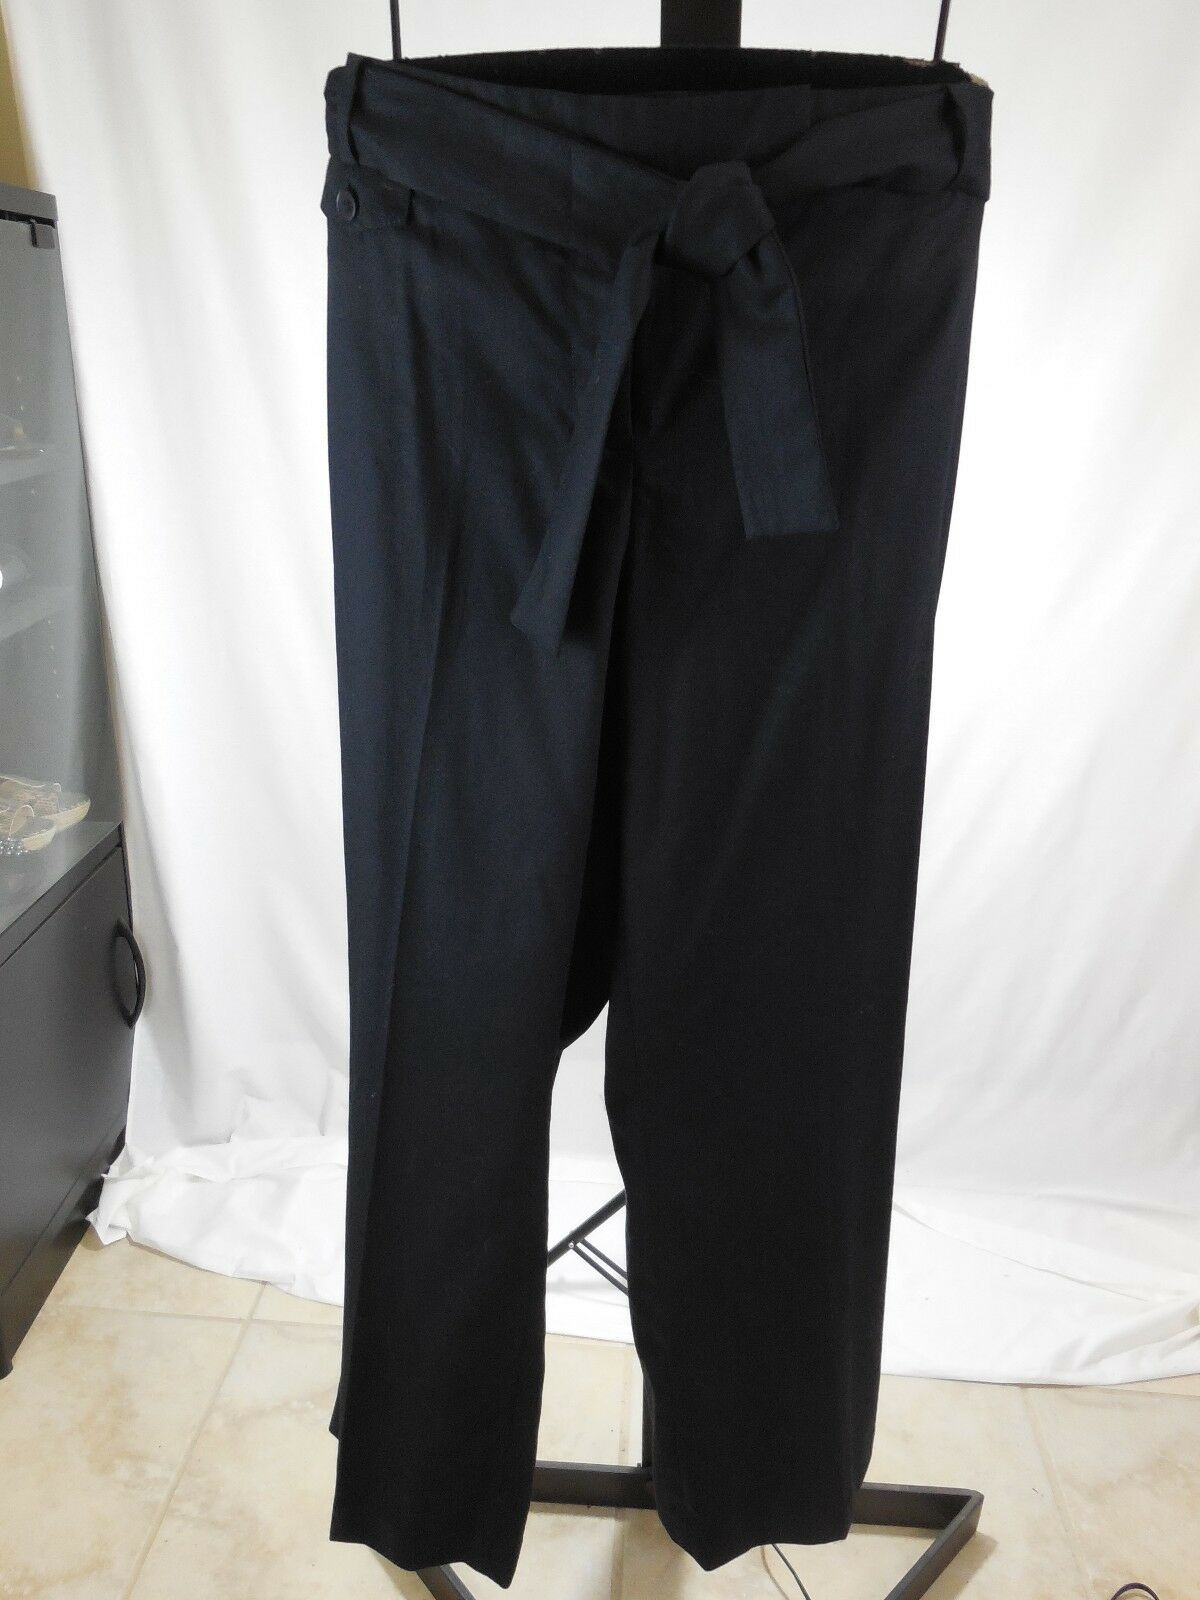 PETITE DARK NAVY blueE 100% COTTON WASHABLE PANTS TALBOTS SIGNATURE 16P  99